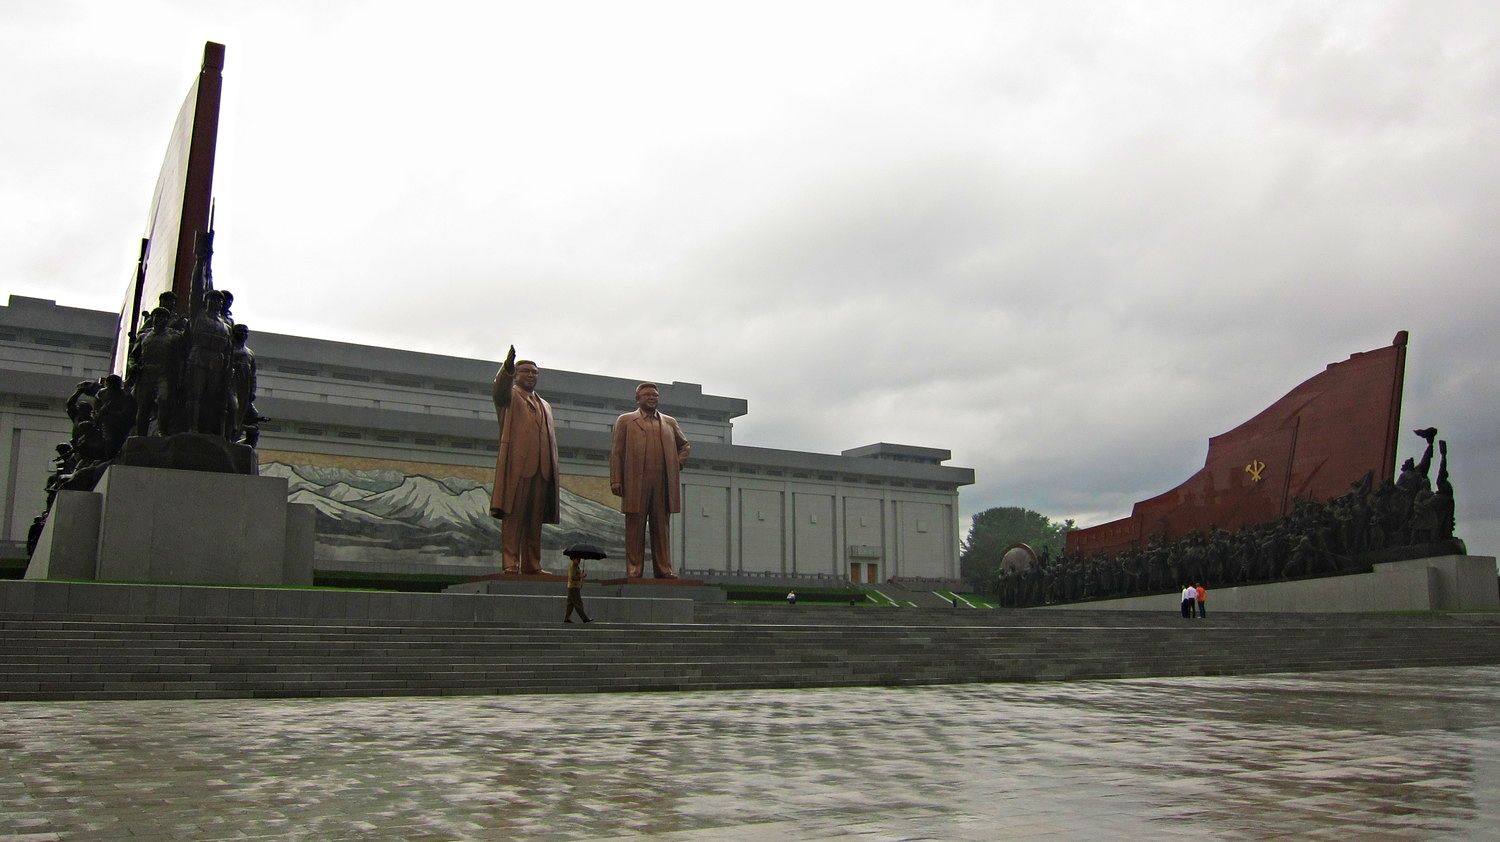 Pyongyang monuments to the Supreme Leader and the Dear Leader. We were only allowed to take pictures of the entirety of the bodies, not close-ups of the statues.